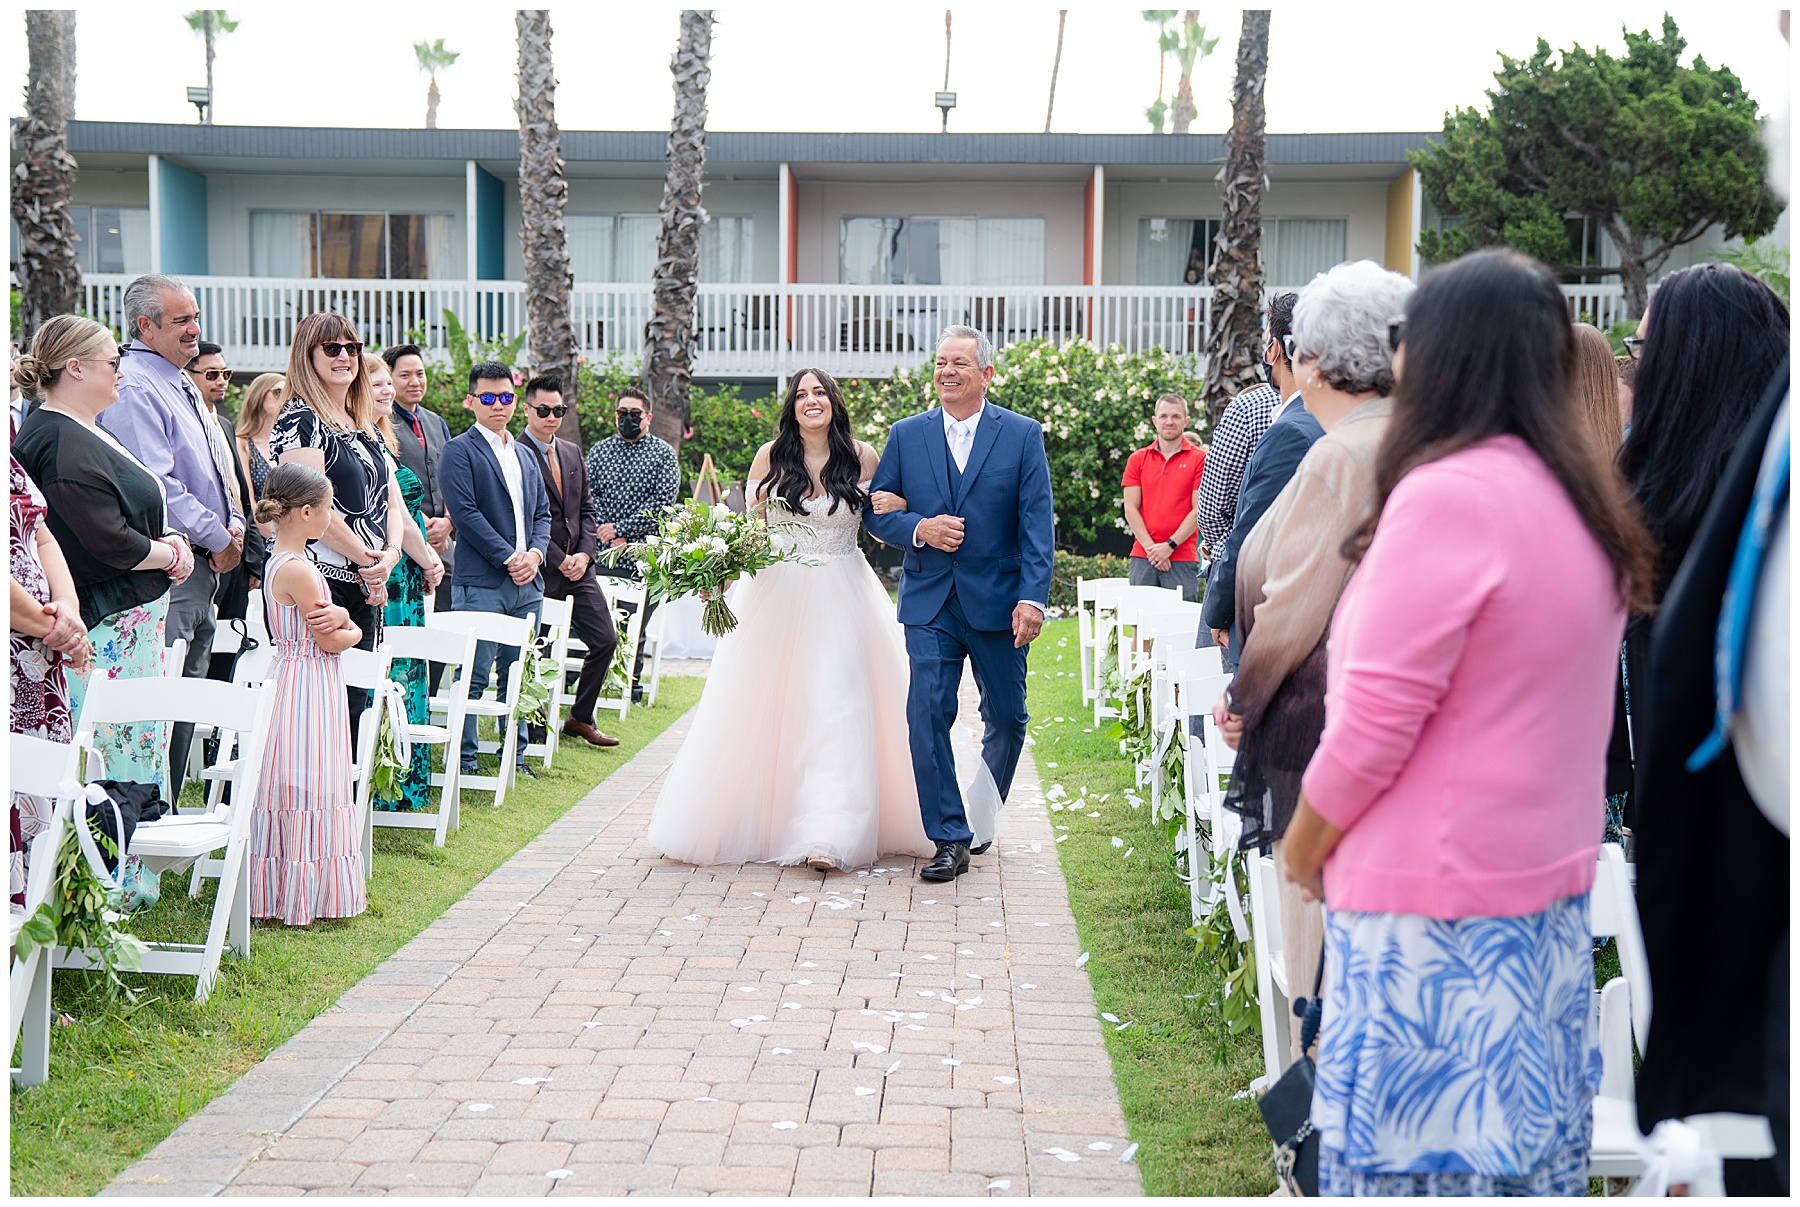 bride walking down the aisle with dad in blue